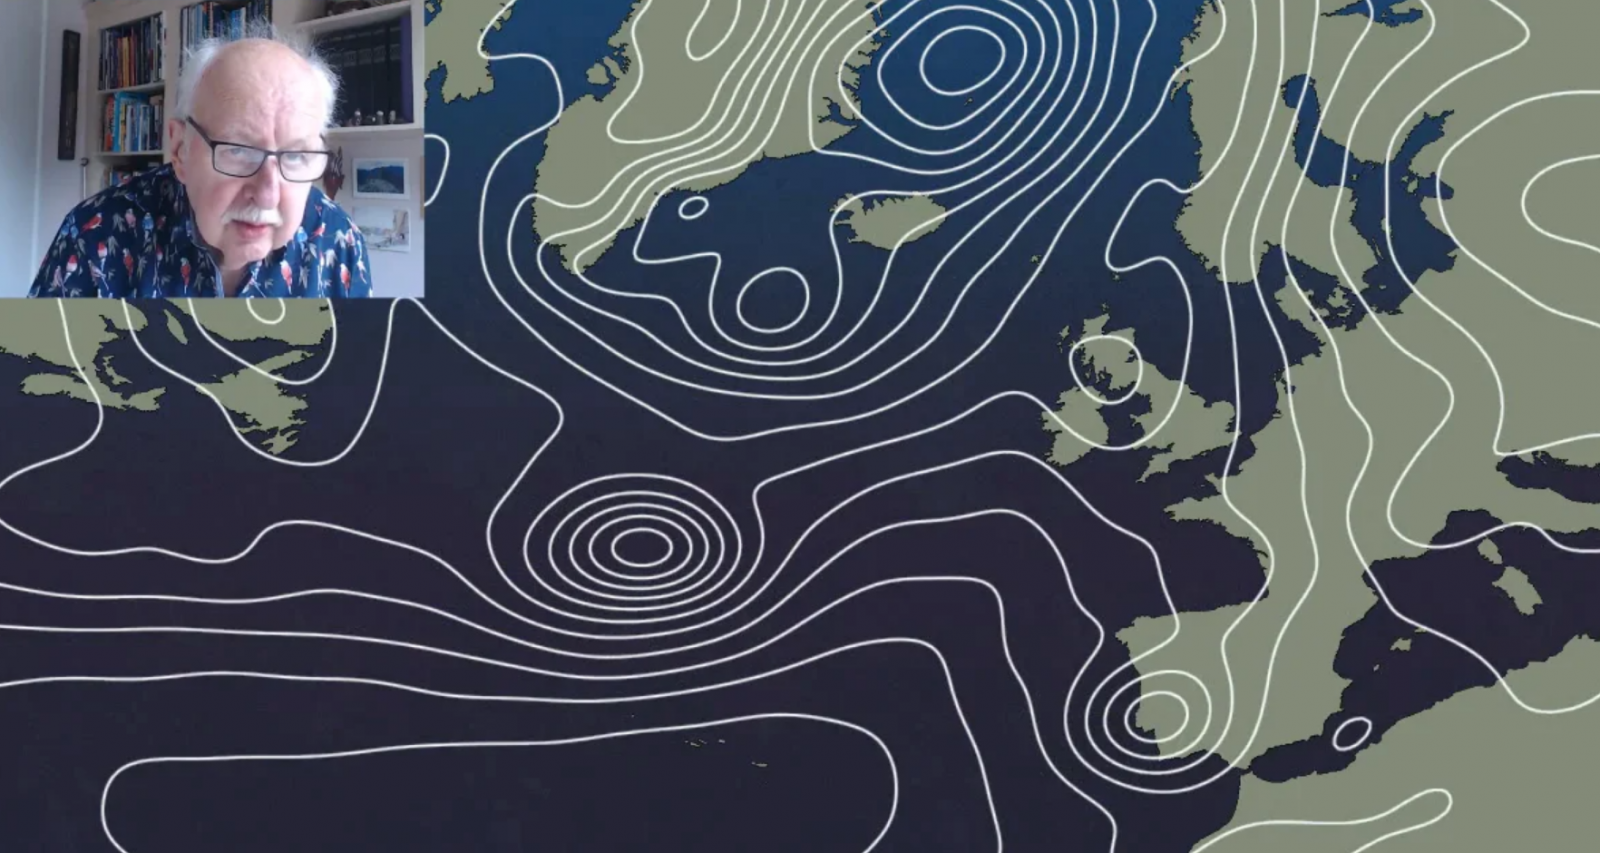 After Storm Callum: Week ahead forecast with Michael Fish